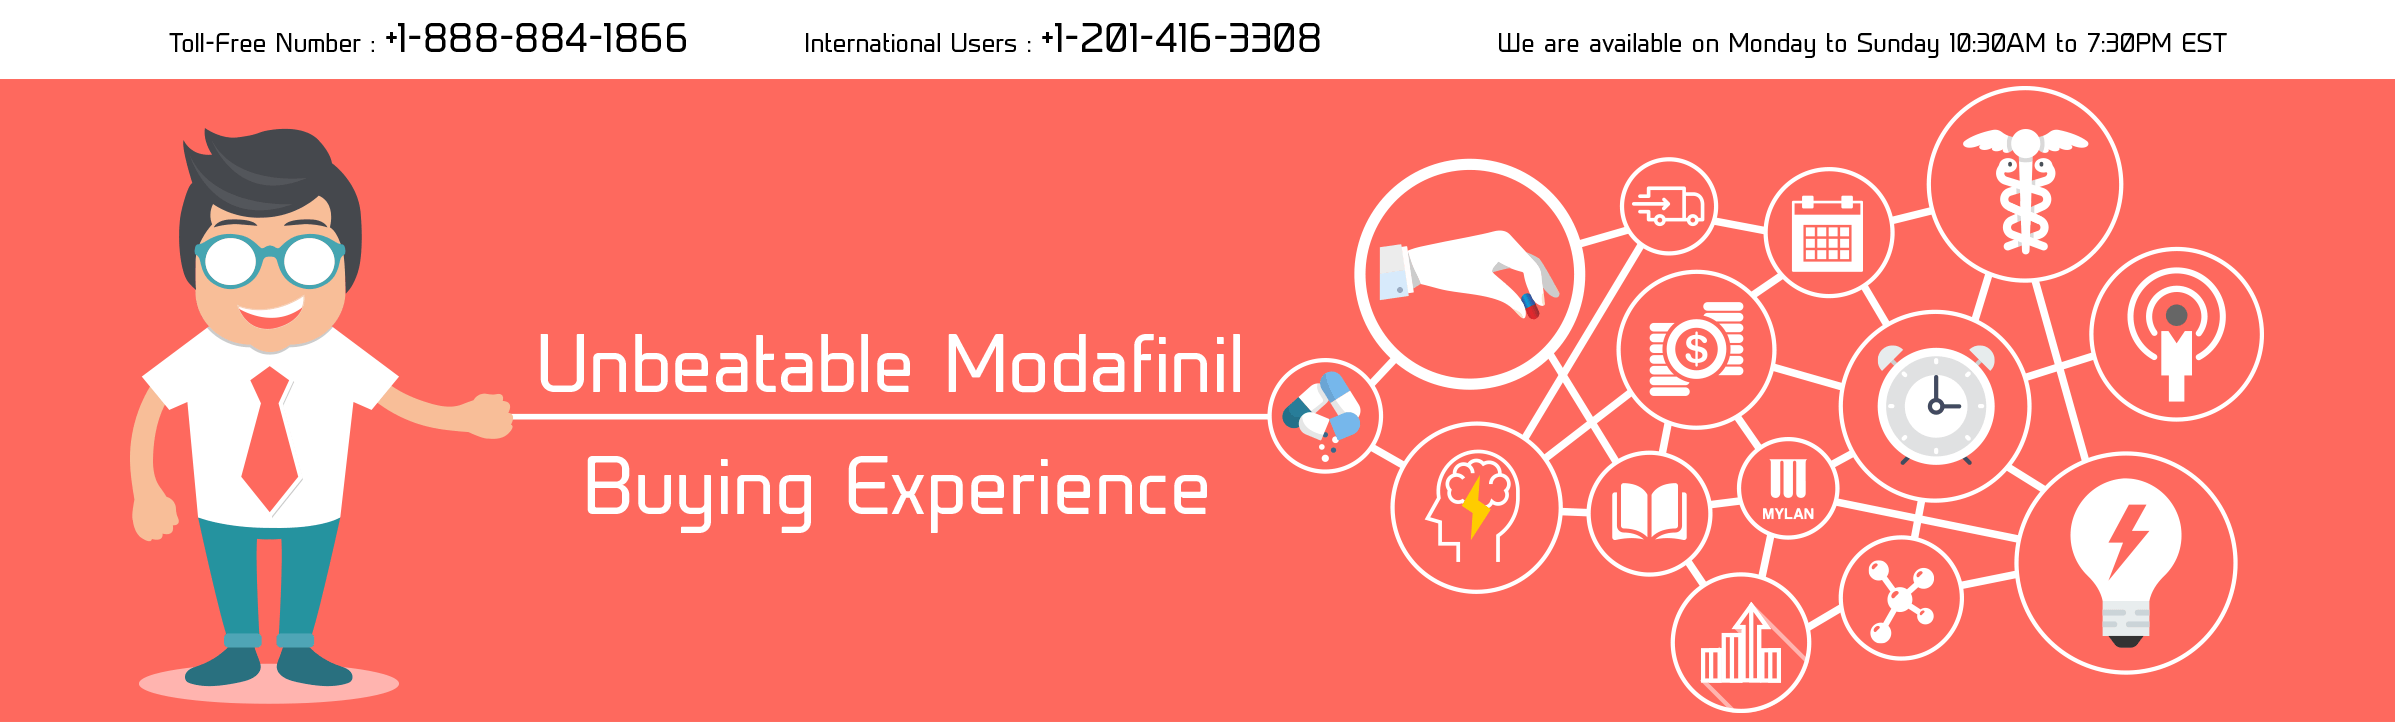 unshakable modafinil buying experience banner